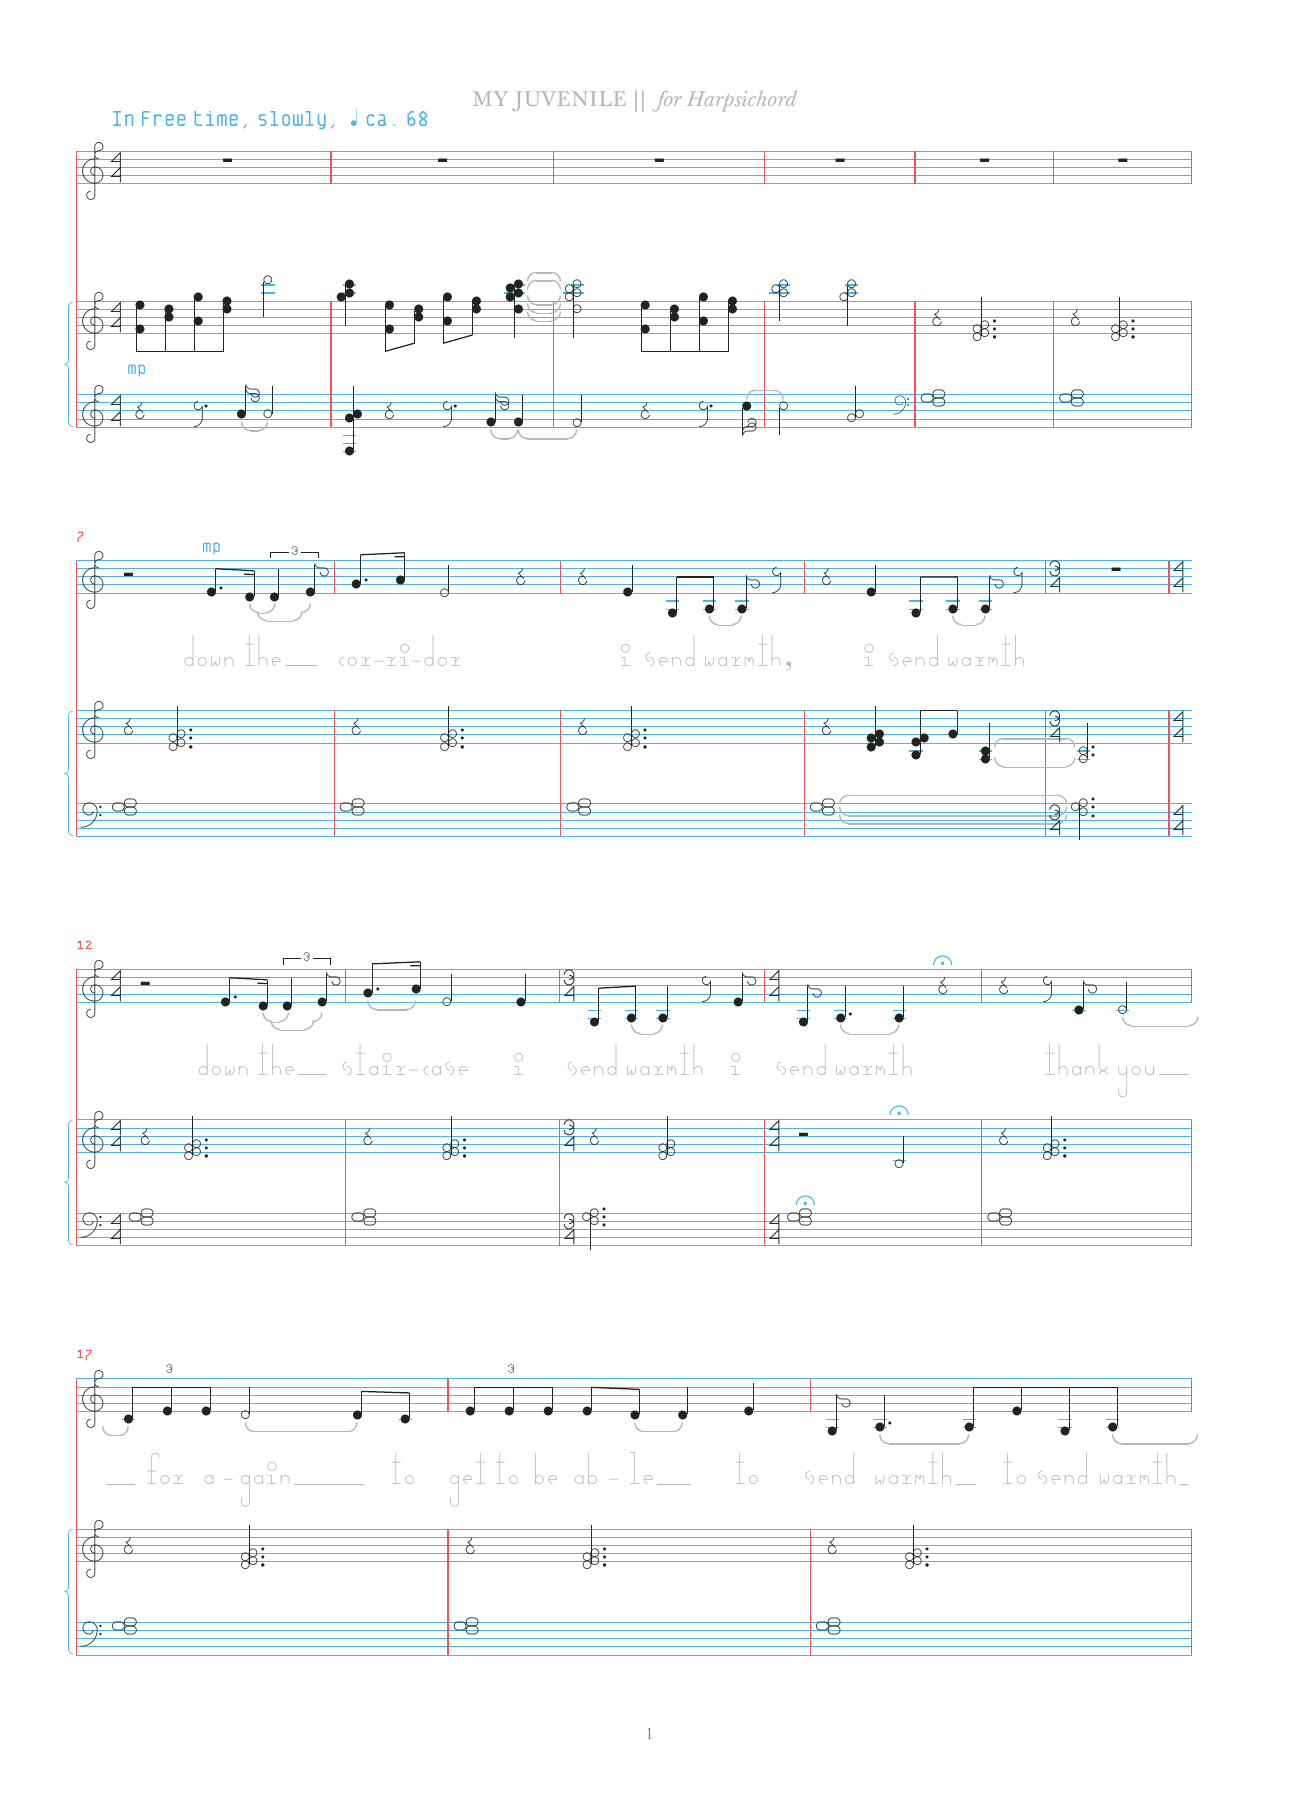 My Juvenile Sheet Music